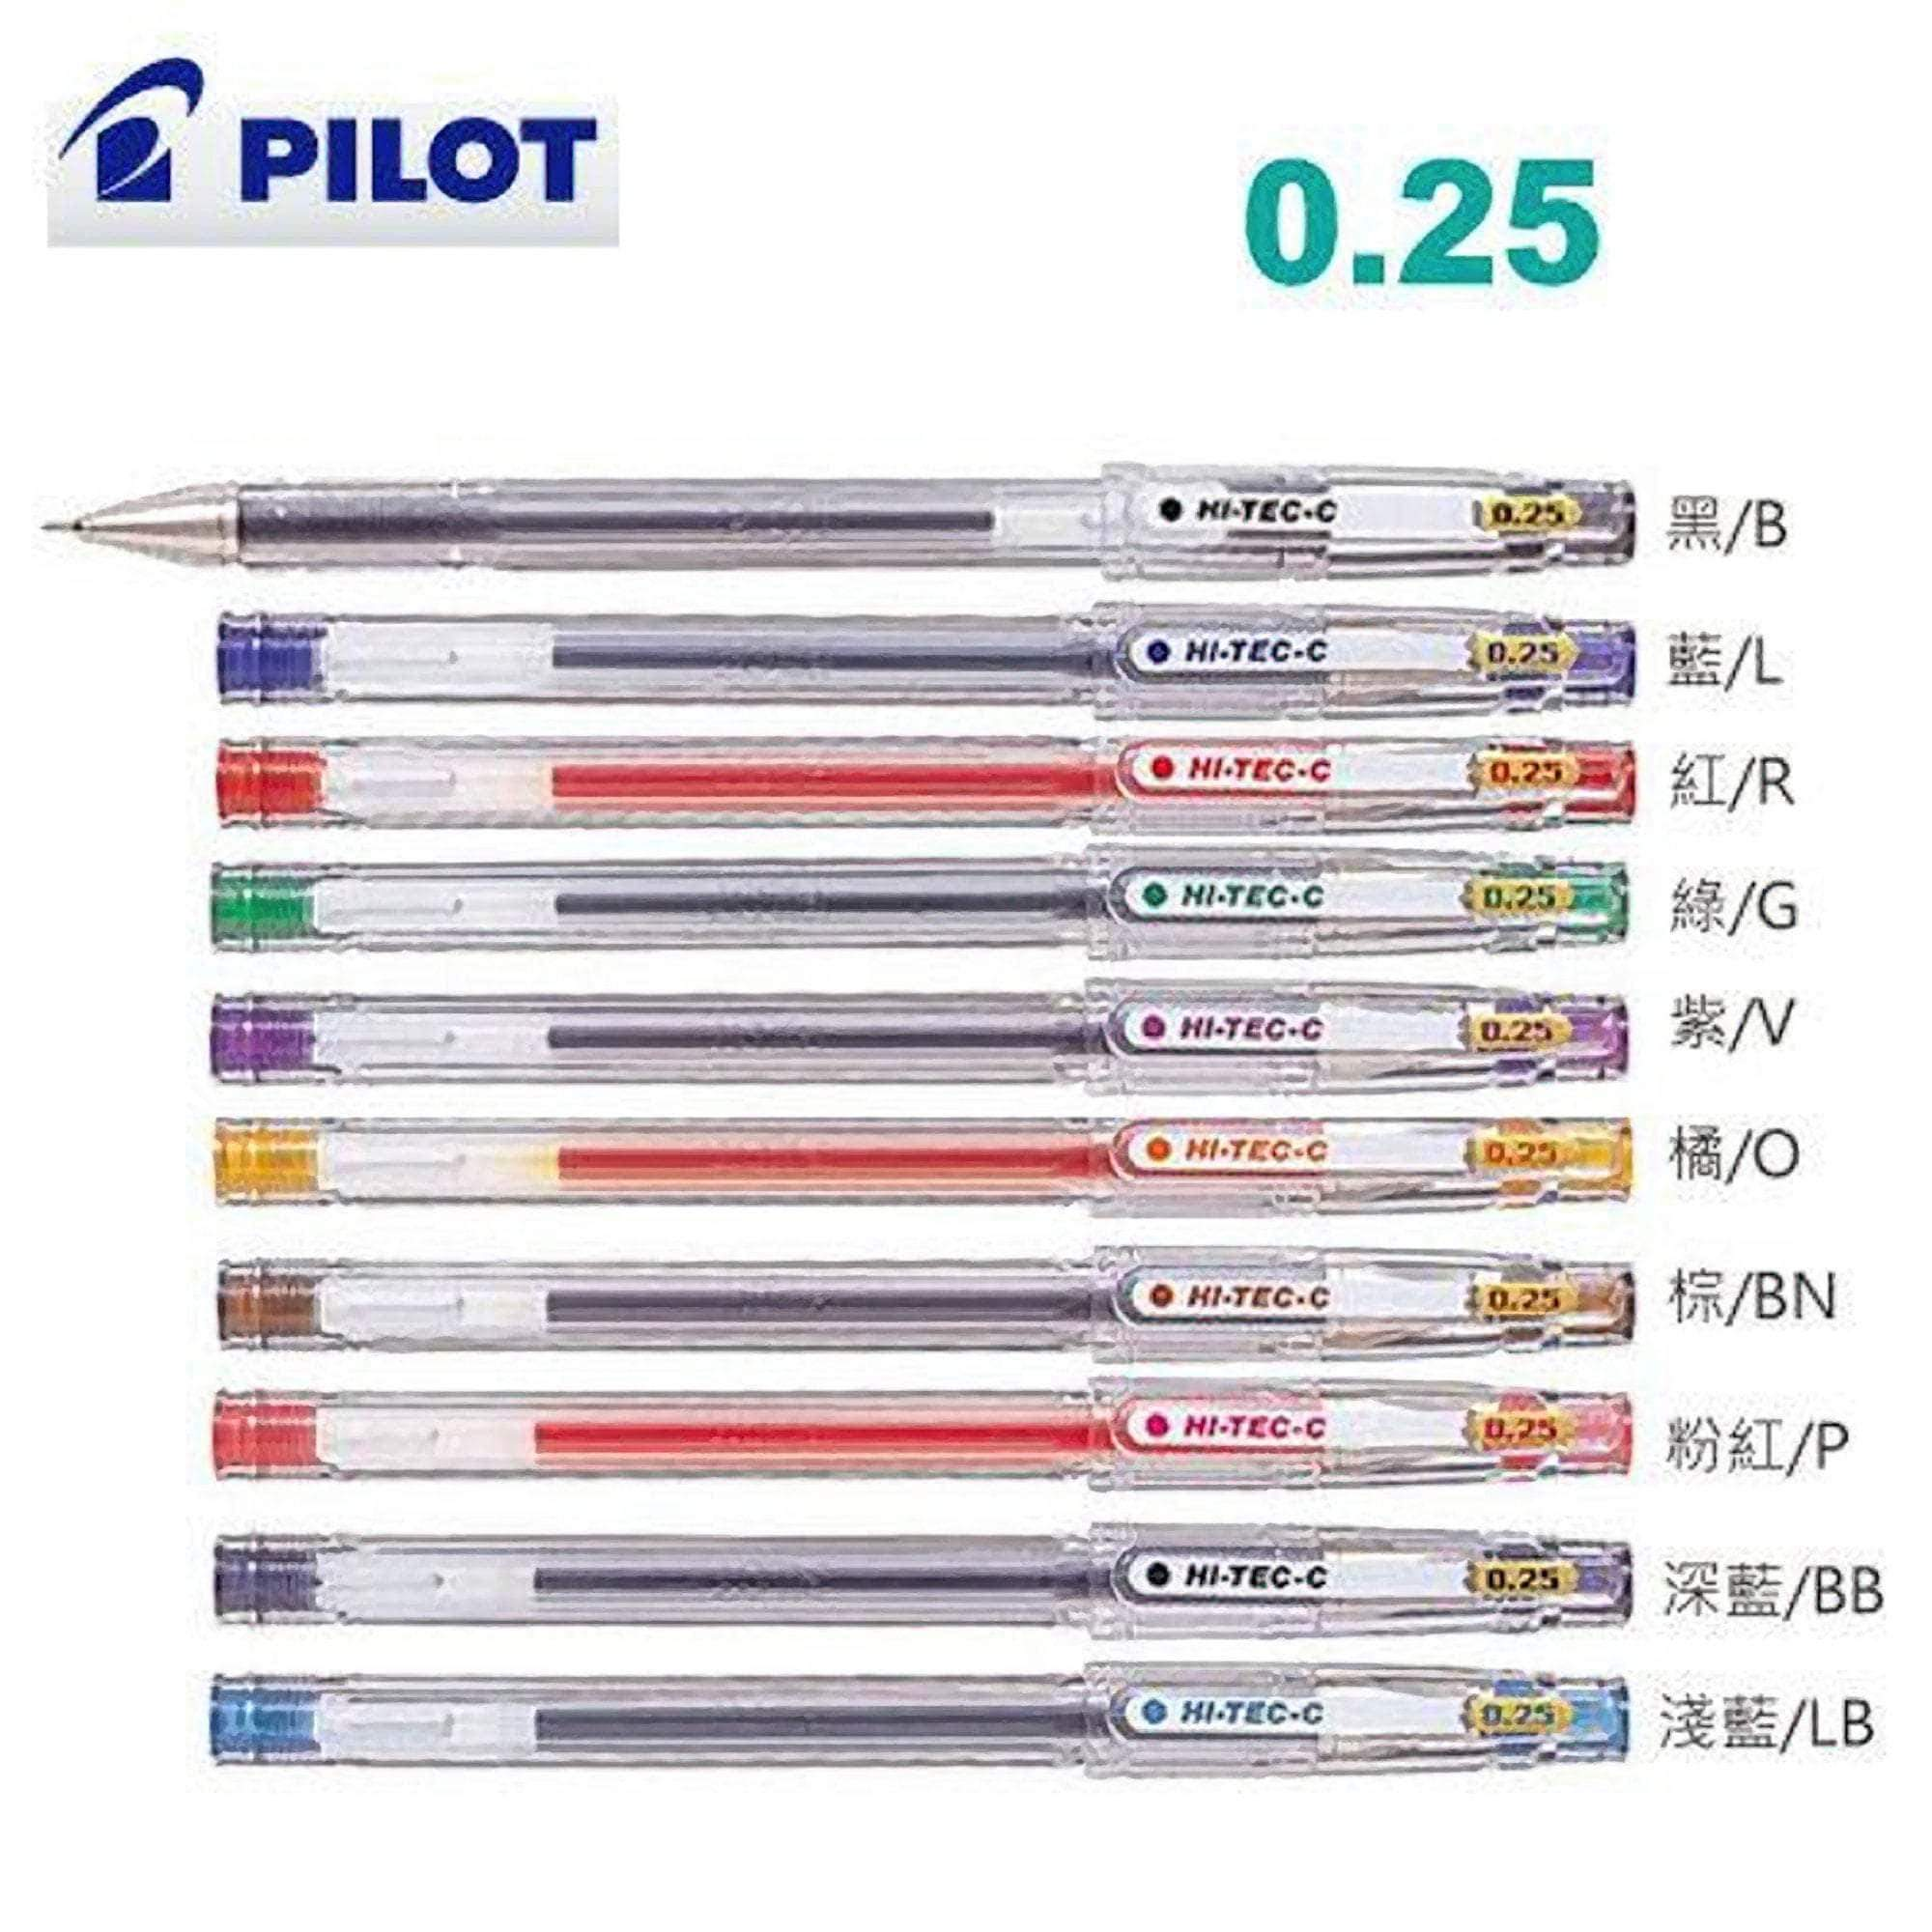 Pilot Hi-Tec-C Gel Pen Ultra Fine Point ORANGE | 0.25 mm - The Stationery Life!